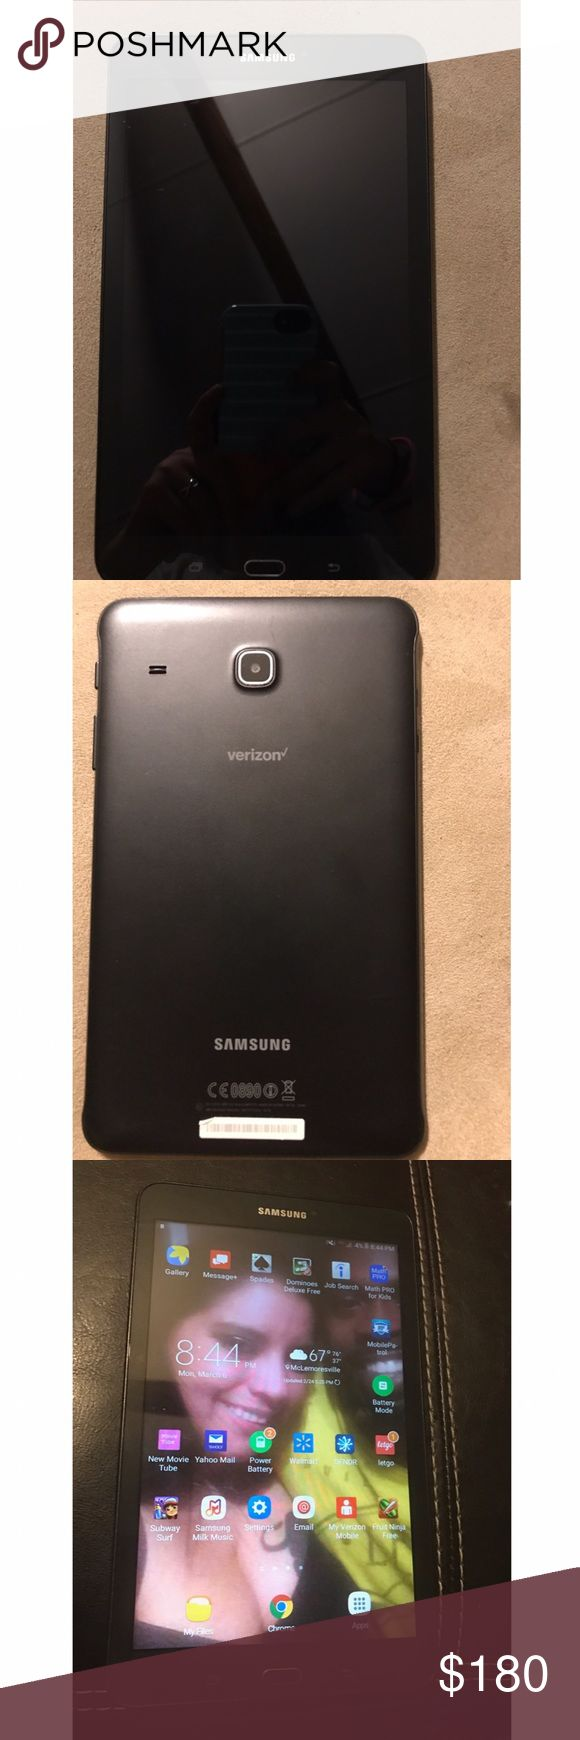 Samsung galaxy tablet Samsung Galaxy Tab E on Verizon network, perfect condition, we just never use it. Accessories